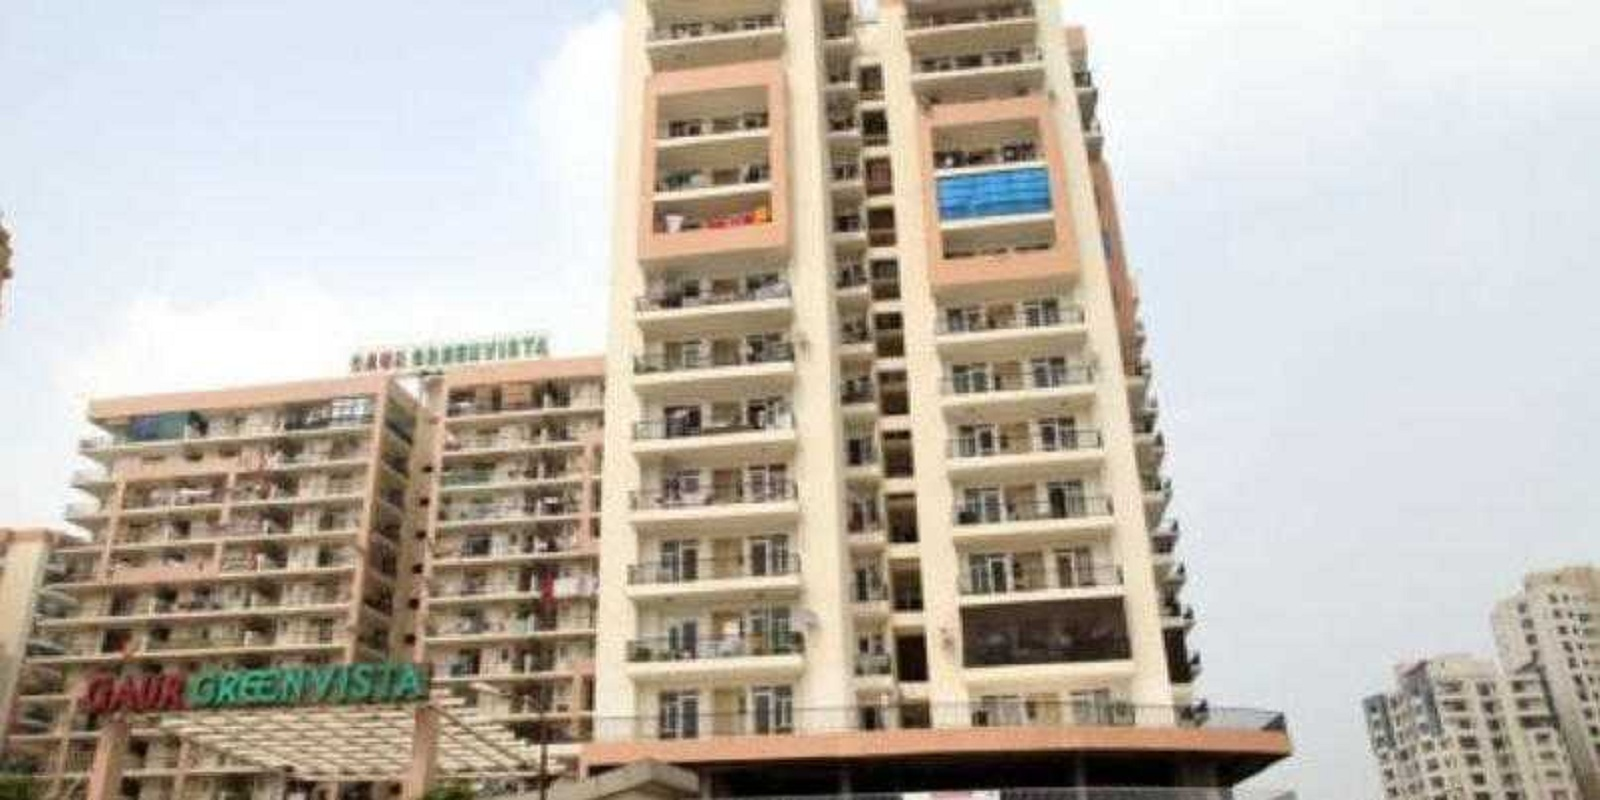 gaurs green vista phase ii project project large image1